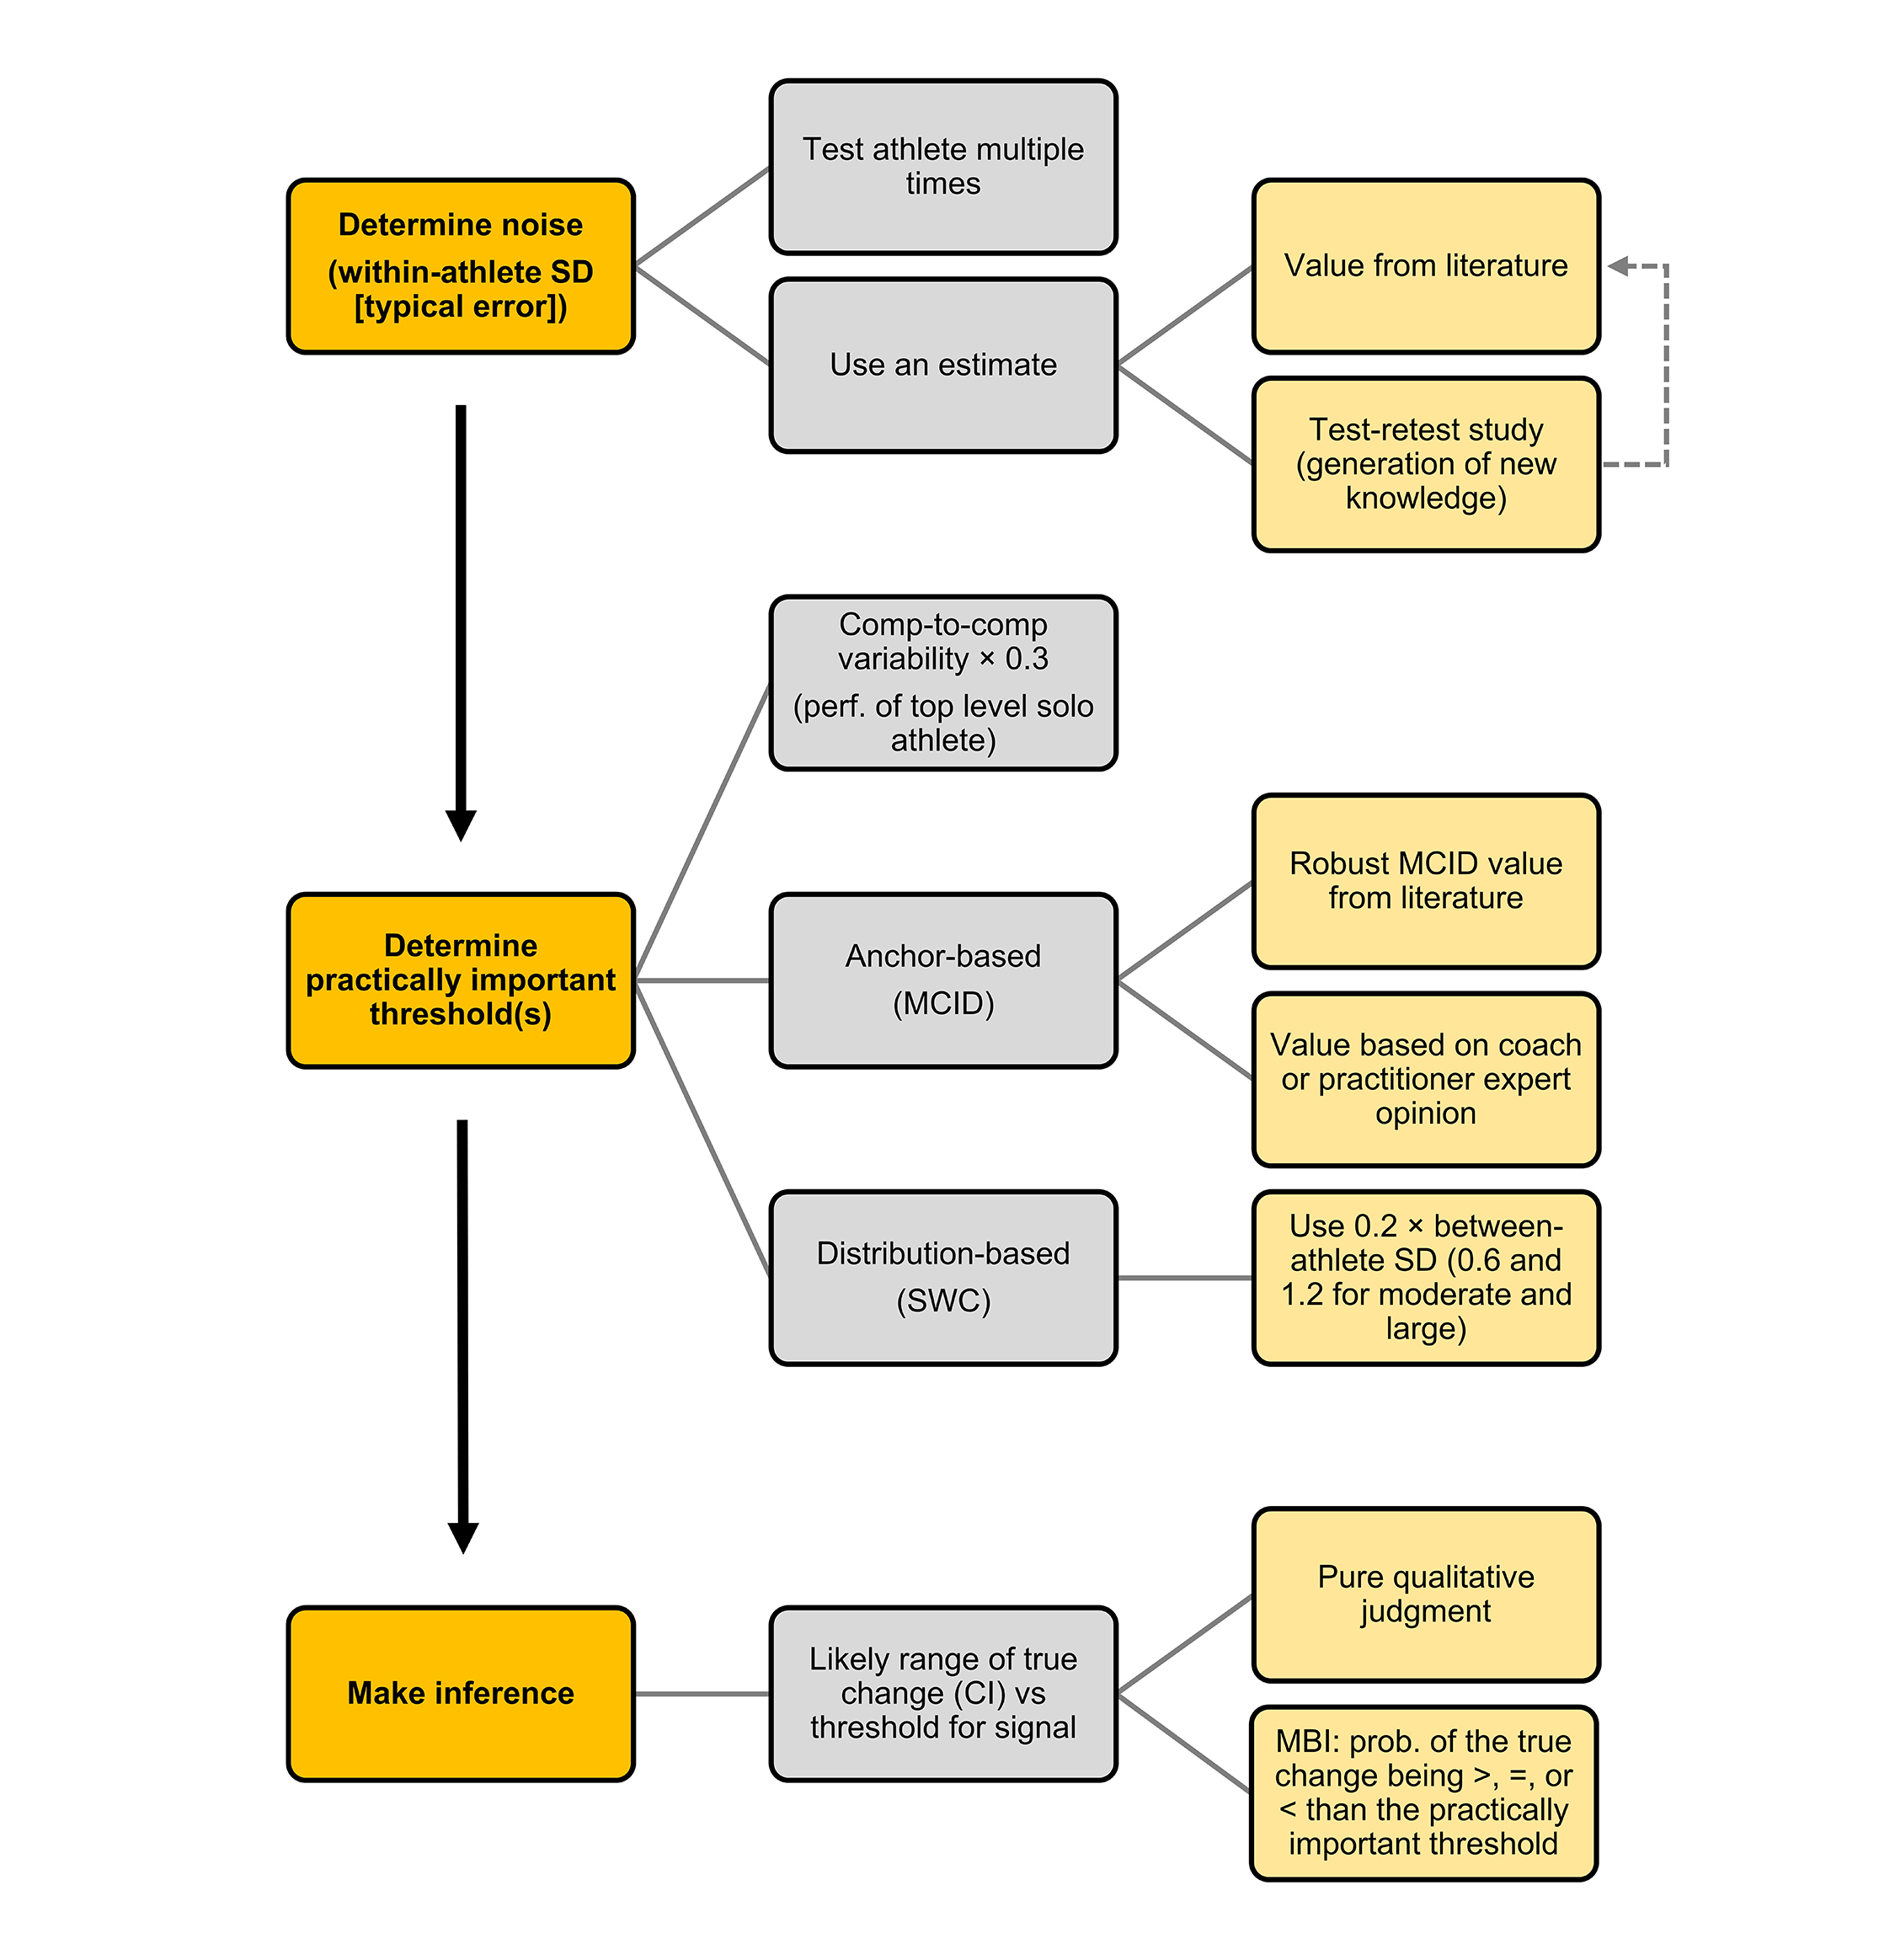 Figure 6: Conceptual framework for measuring noise, practical importance, and making inference on individual changes